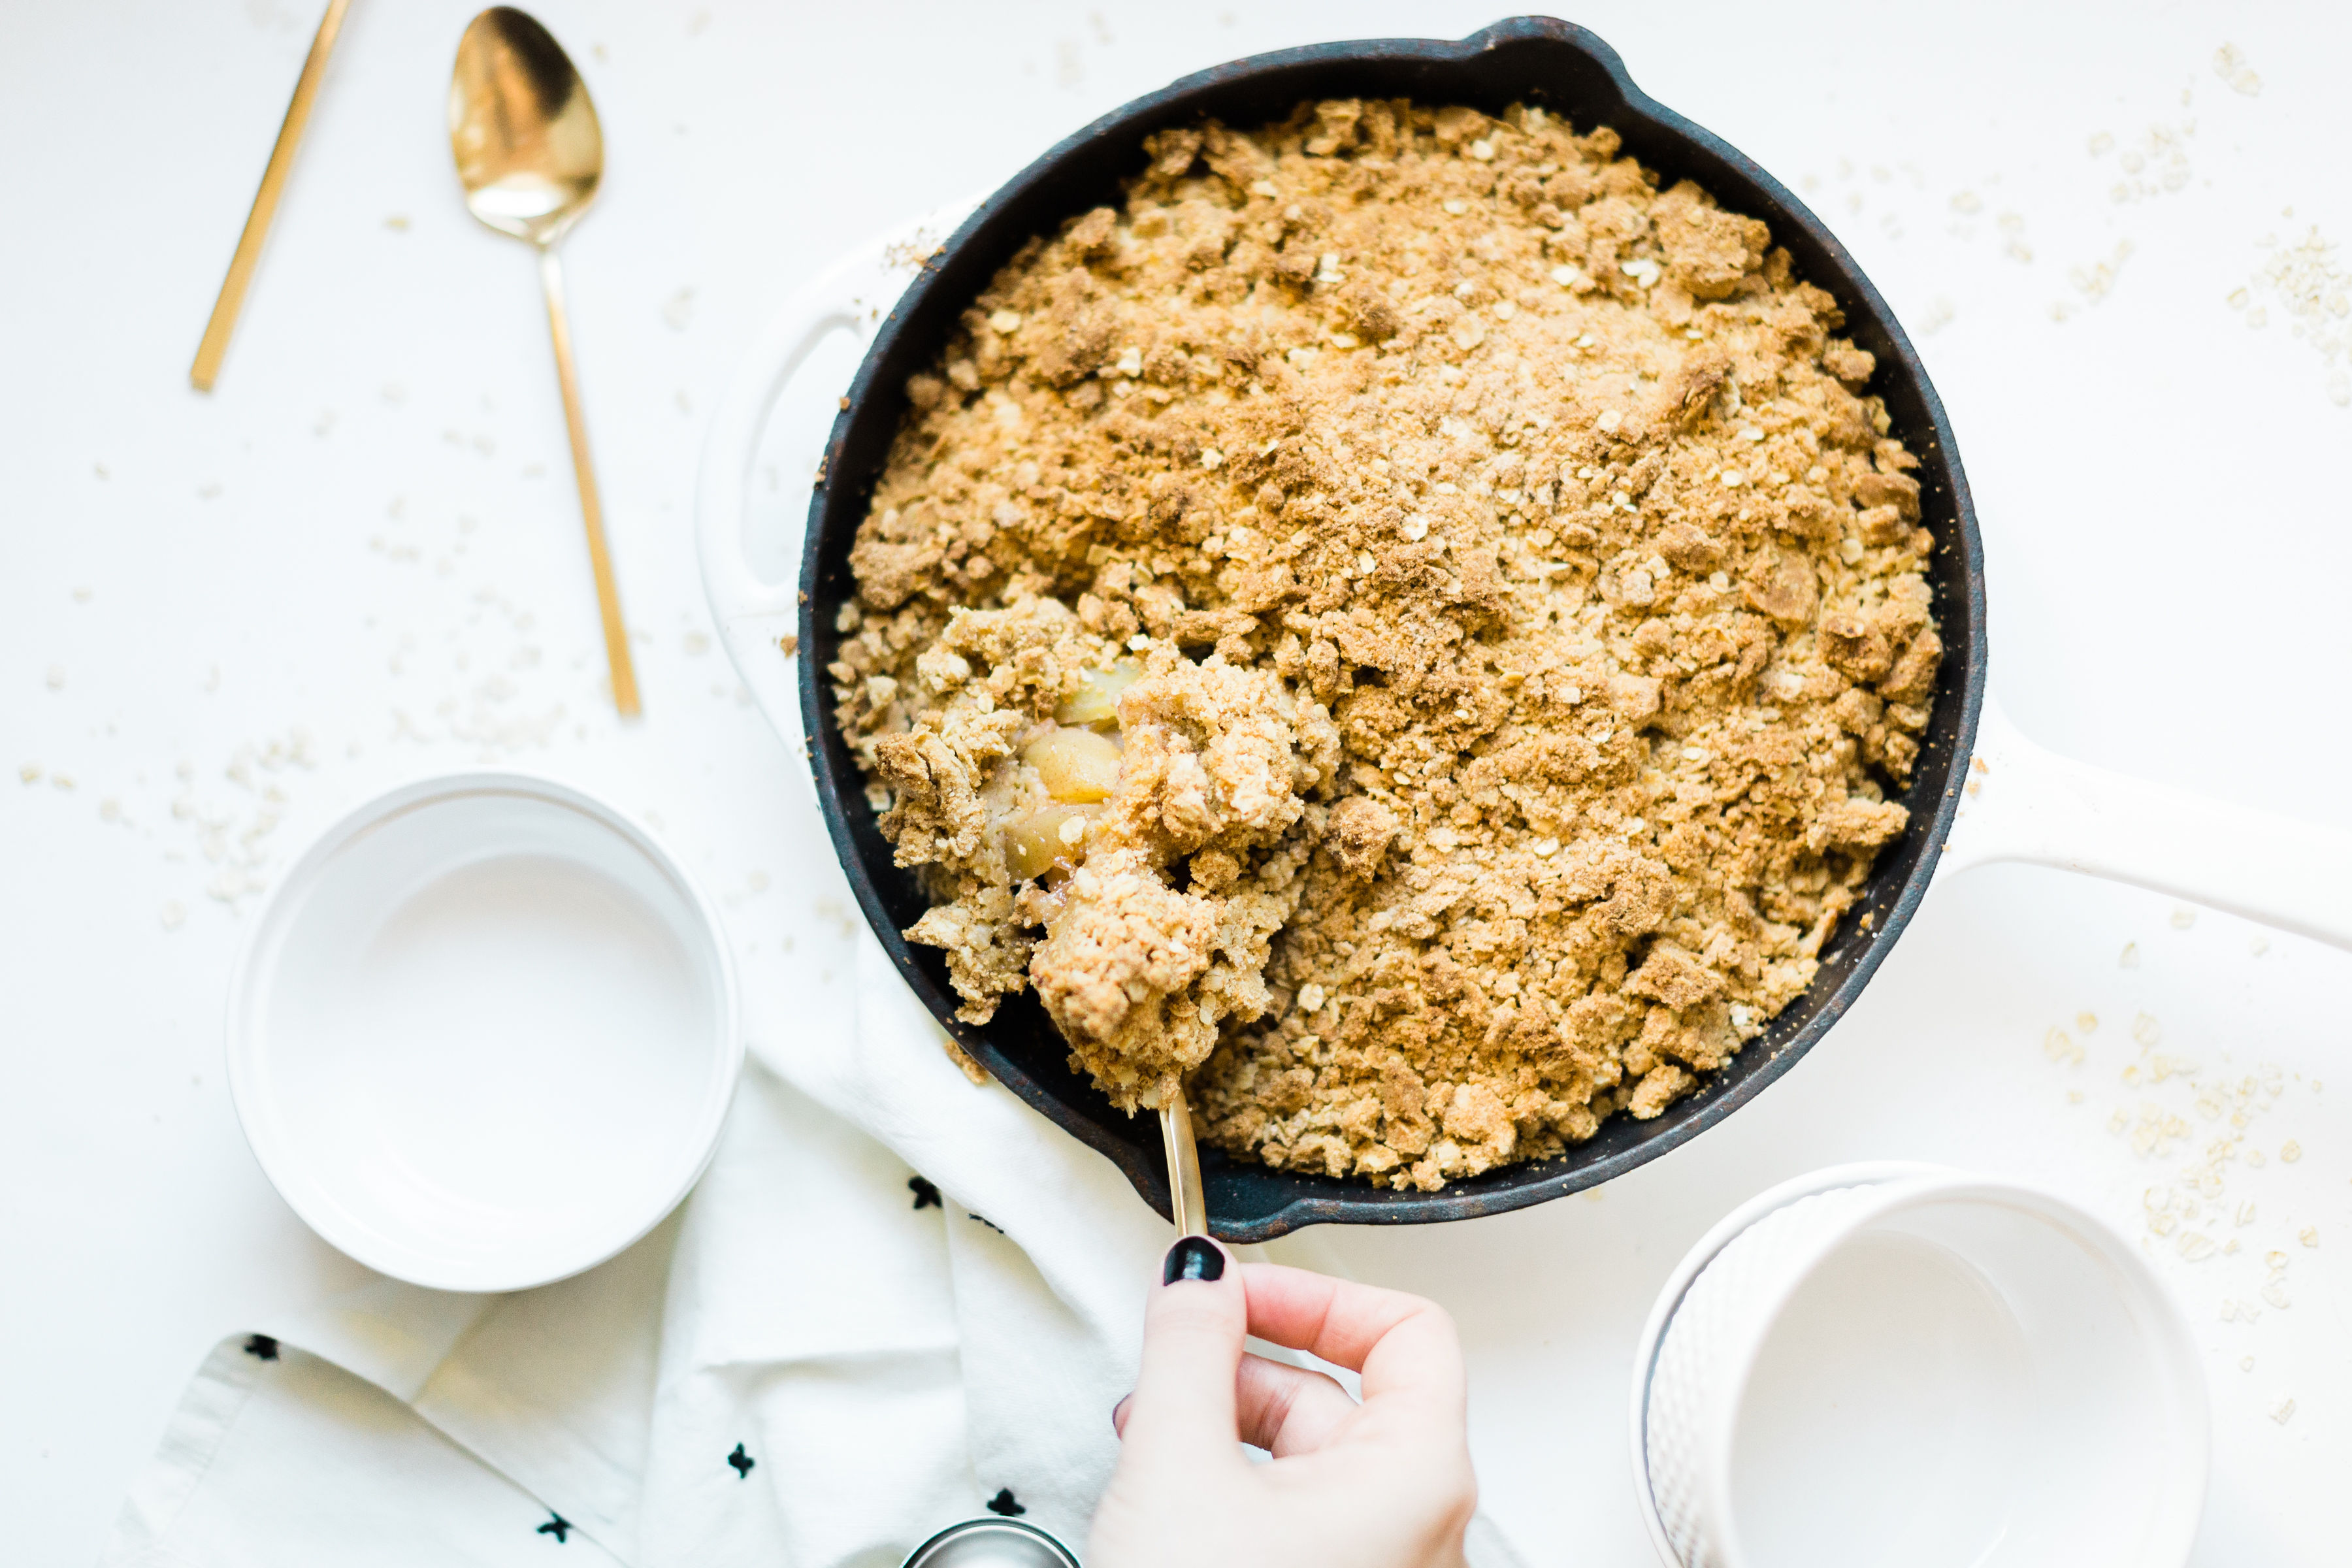 This amazing skillet apple crumble is filled with juicy apples baked into sticky, caramel-y, gooey perfection, and topped with a buttery crisp meets crumble topping that is decadently crumbly, a little bit doughy, with plenty of crunch. Click through for the #recipe. #crumble #crisp #applecrumble #applecrisp #fruitcrumble #fruitcrisp #dessert #skilletcrumble #skilletcrisp #skilletdessert | glitterinc.com | @glitterinc